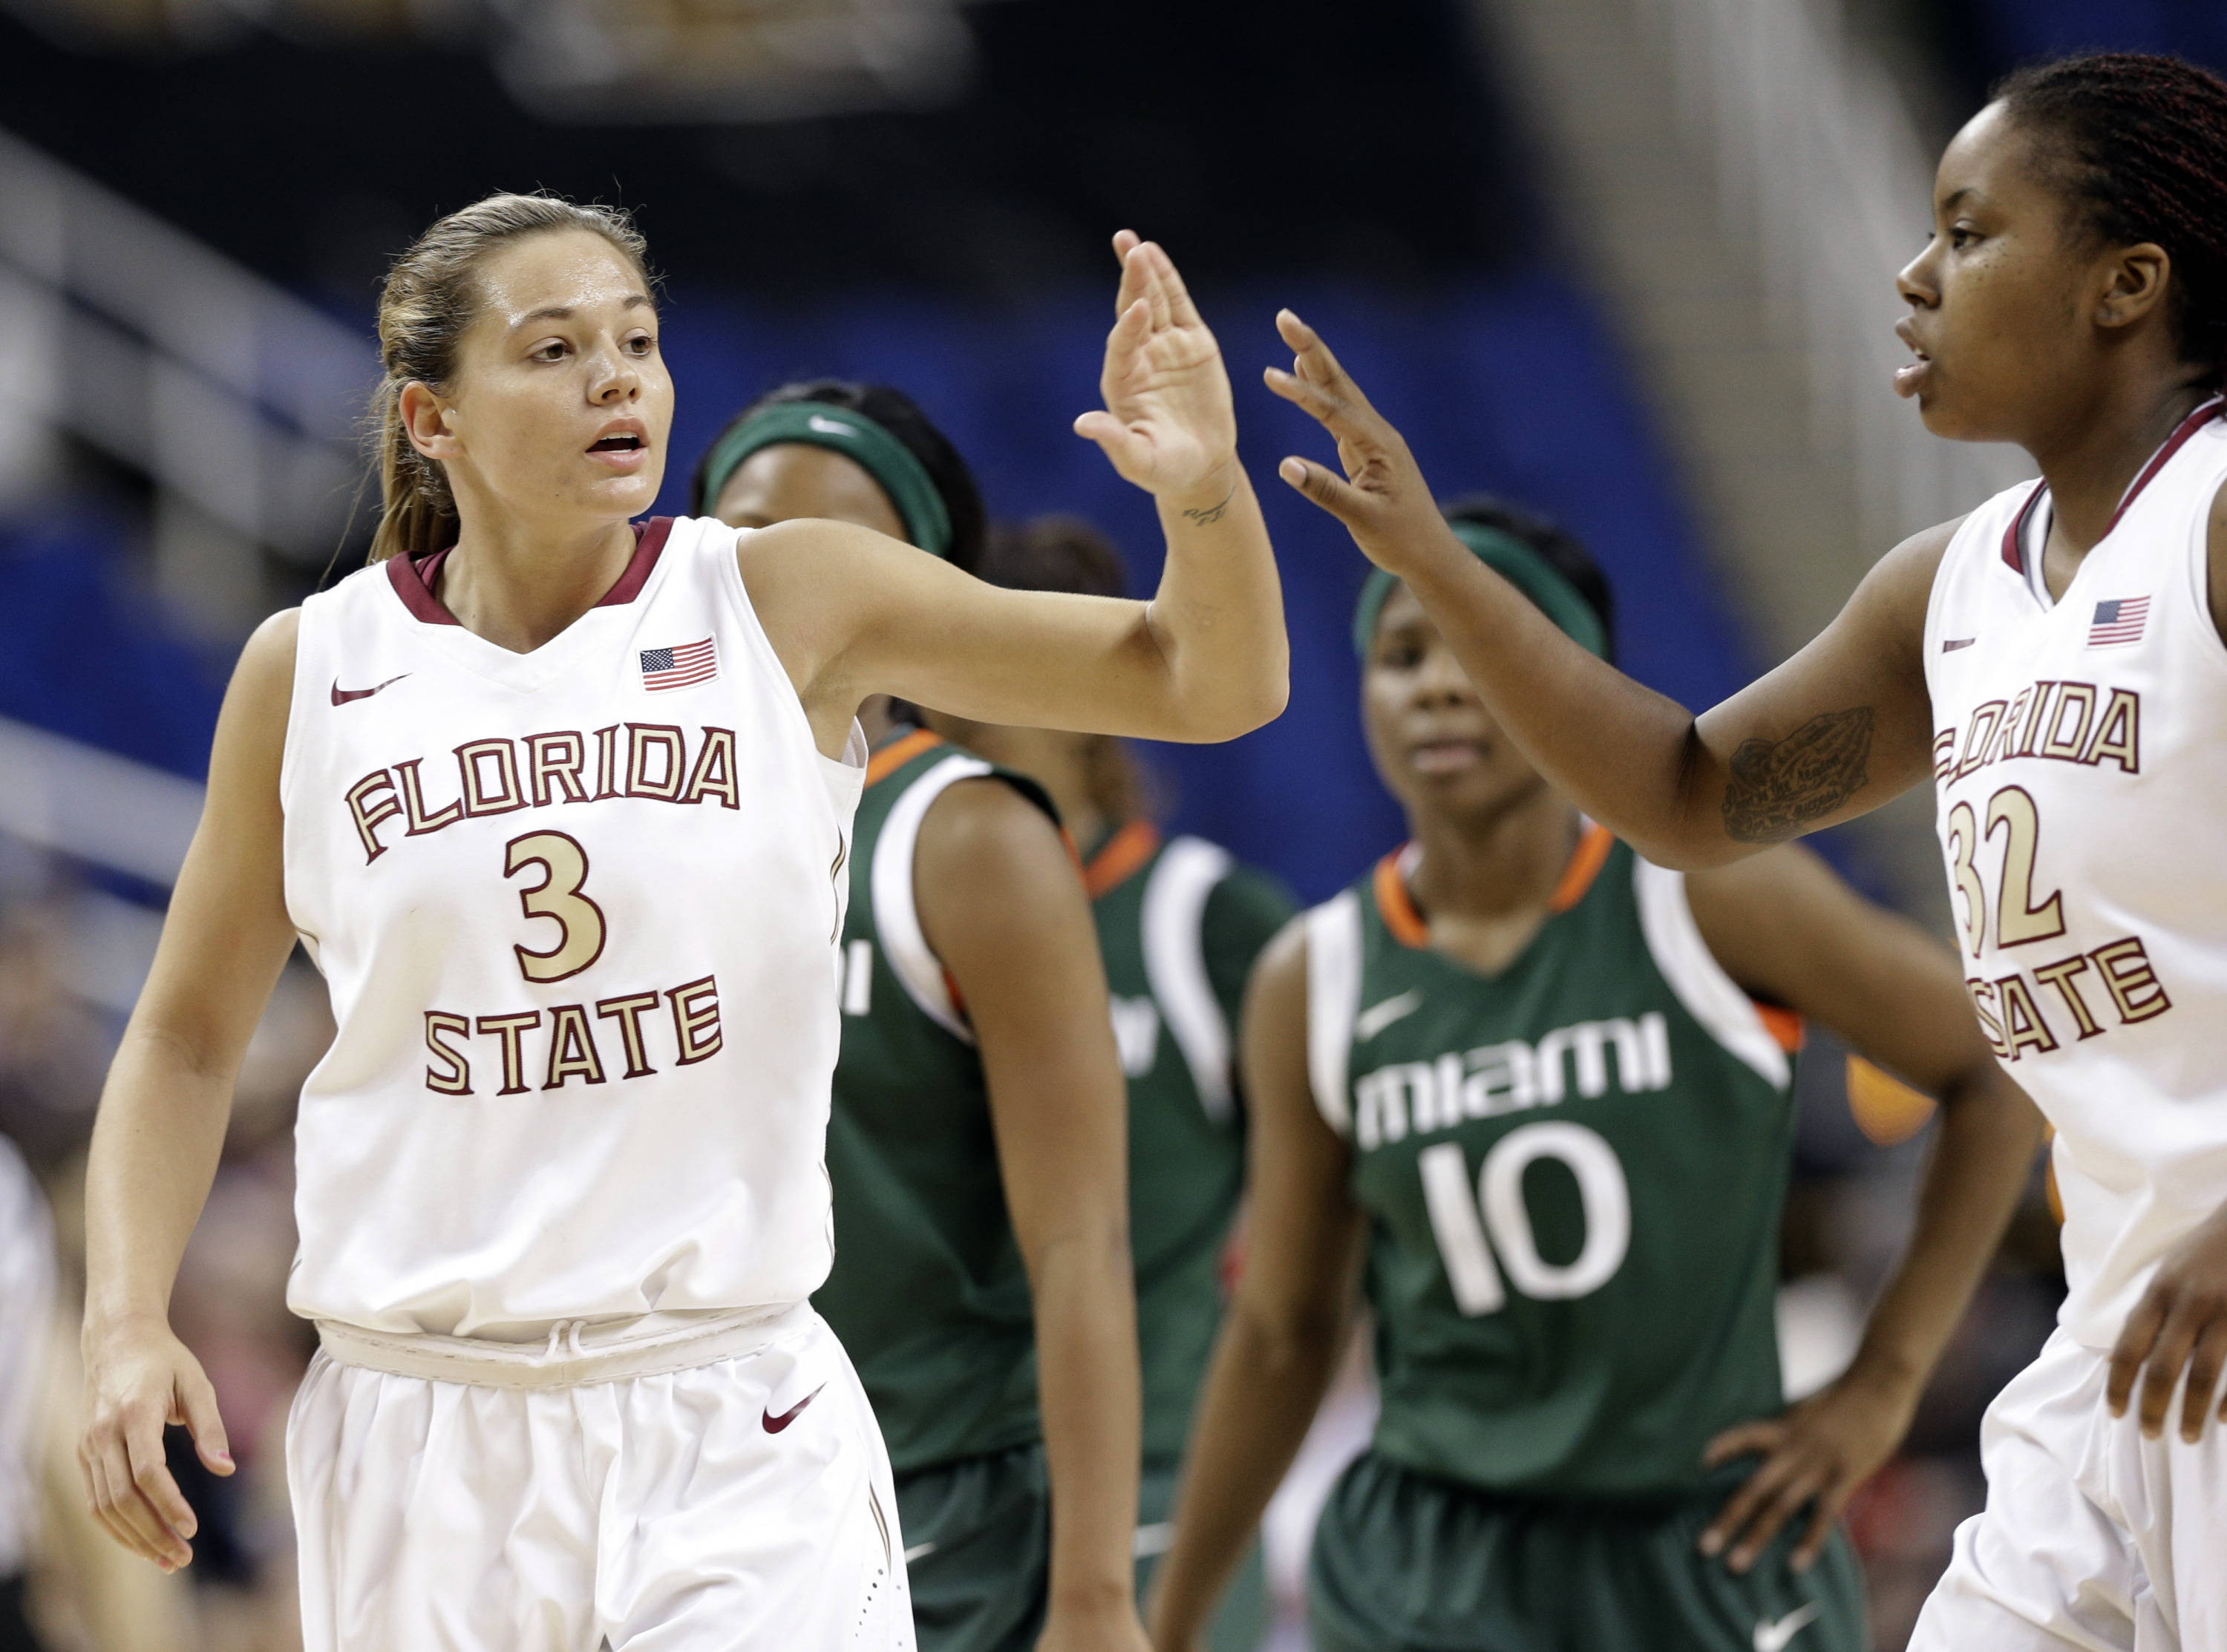 Florida State's Alexa Deluzio (3) is congratulated by teammate Lauren Coleman (32). (AP Photo/Chuck Burton)